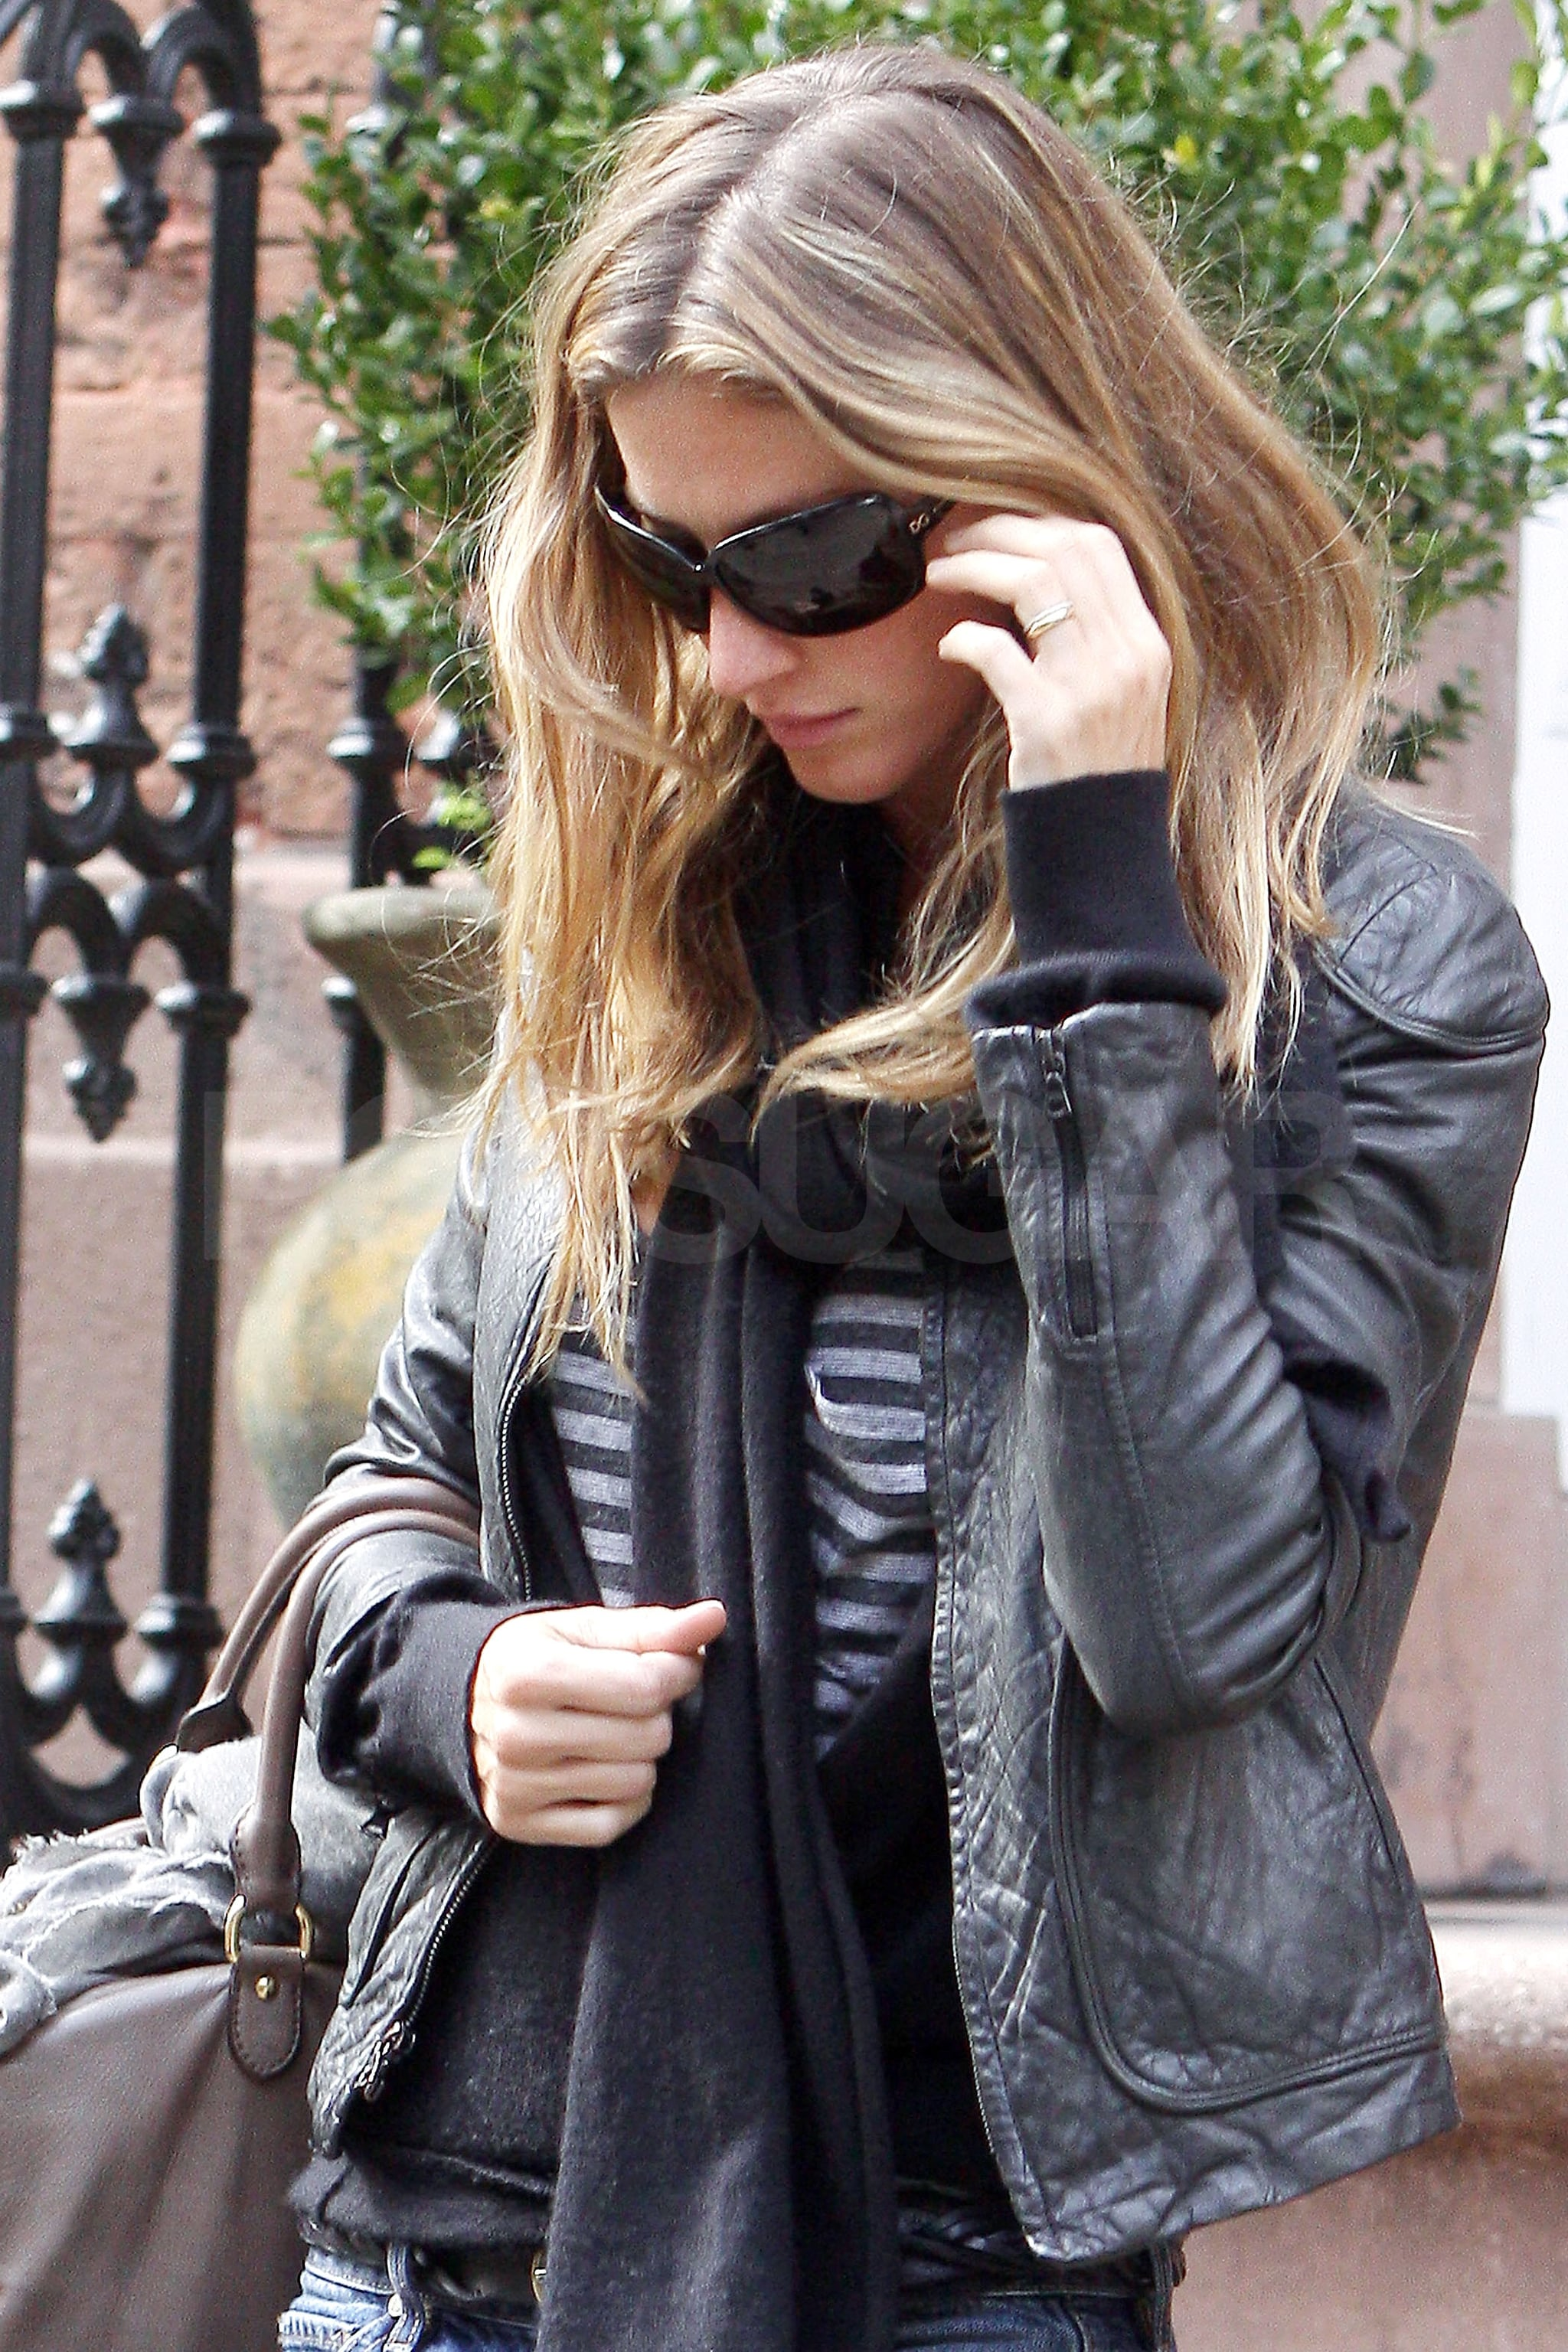 Photo Of Gisele Bundchen Showing Off Her New Wedding Ring In NYC | POPSUGAR Celebrity